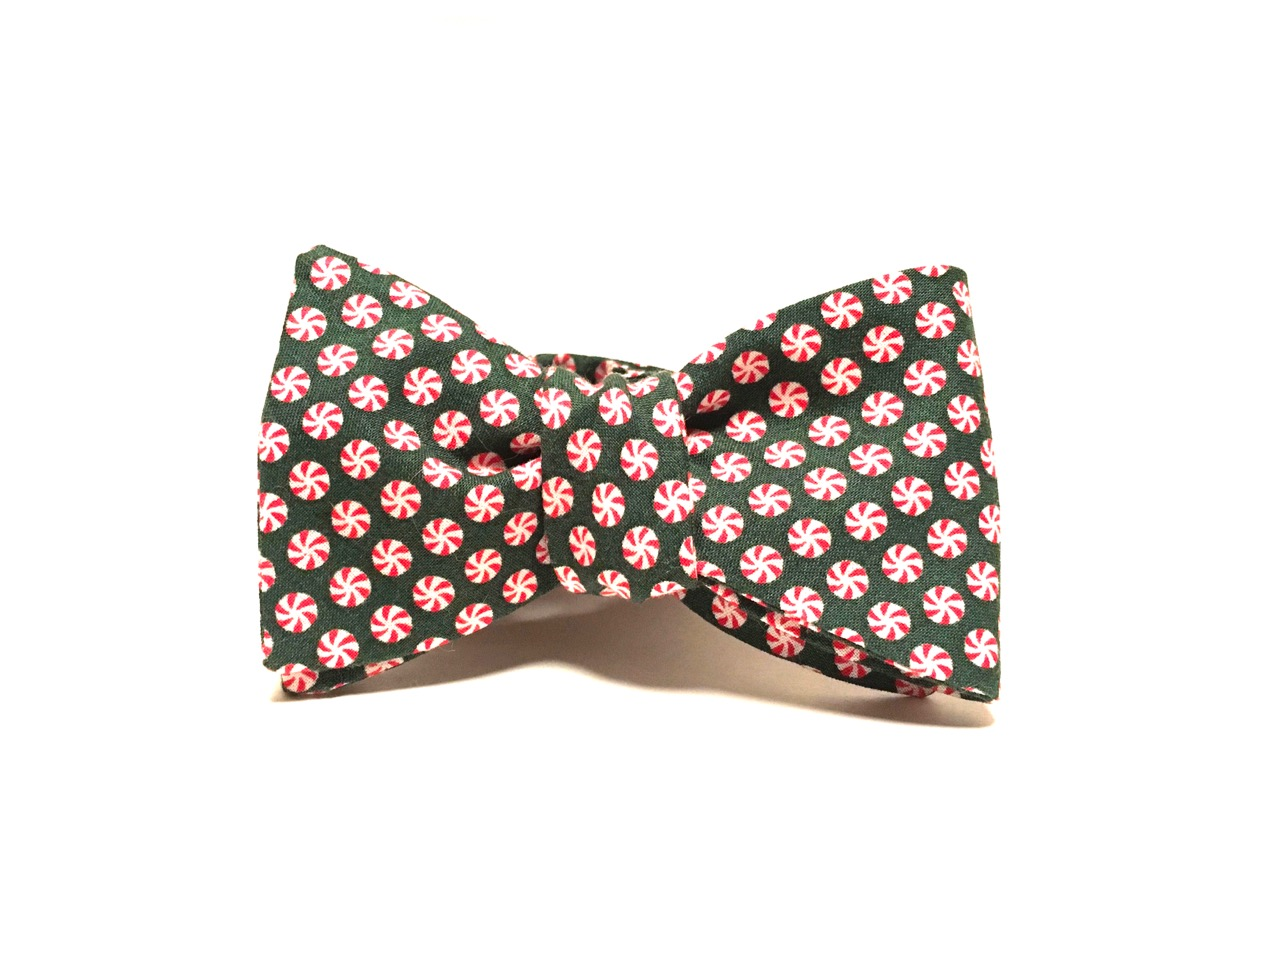 Photo of the green peppermint bow tie